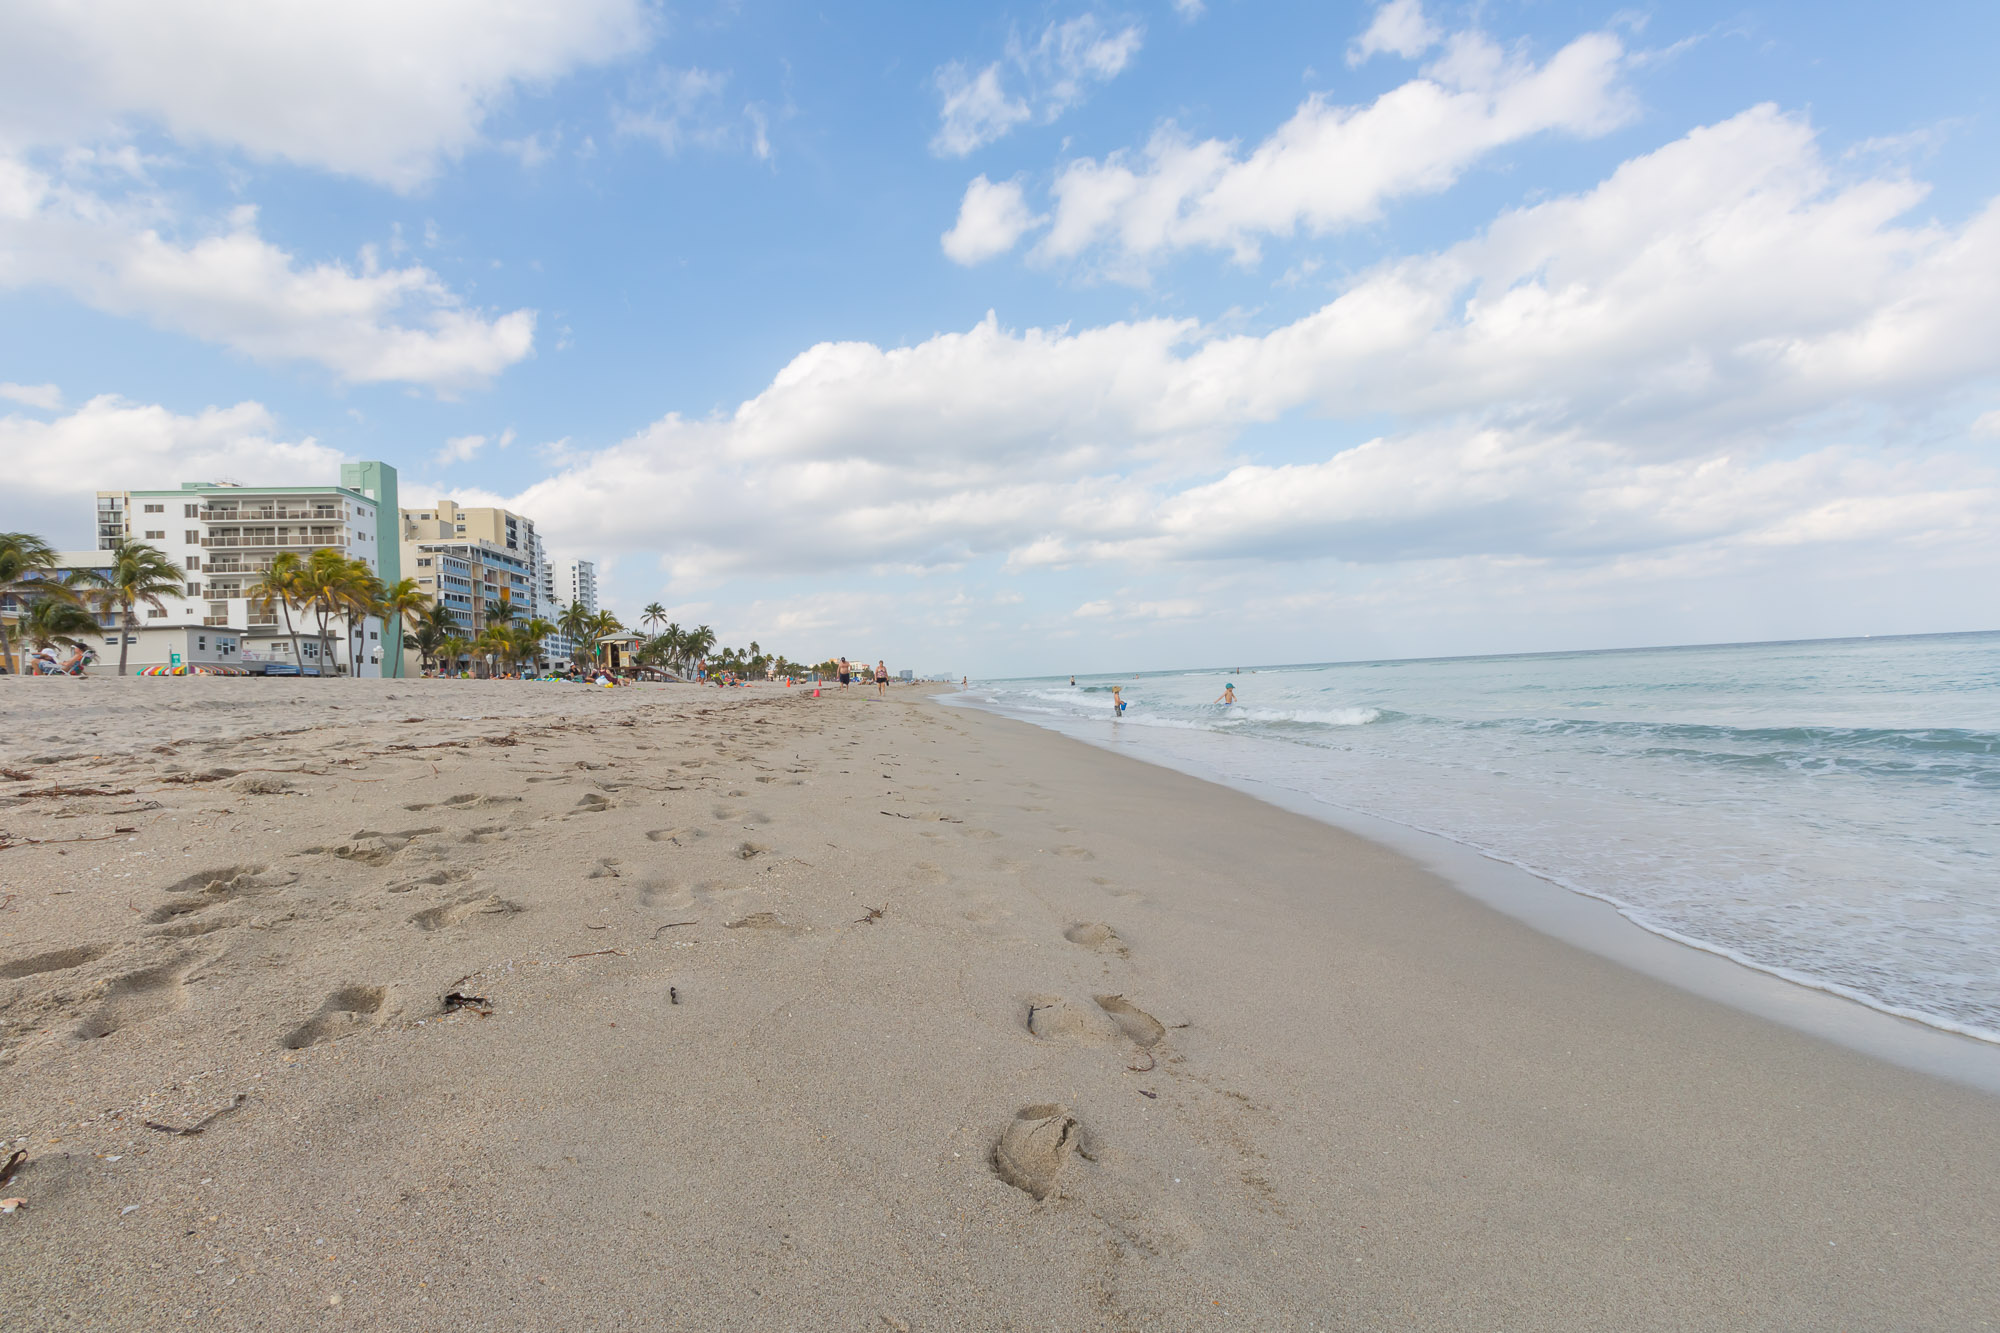 567 City View Studio Hollywood Beach photo 18452332